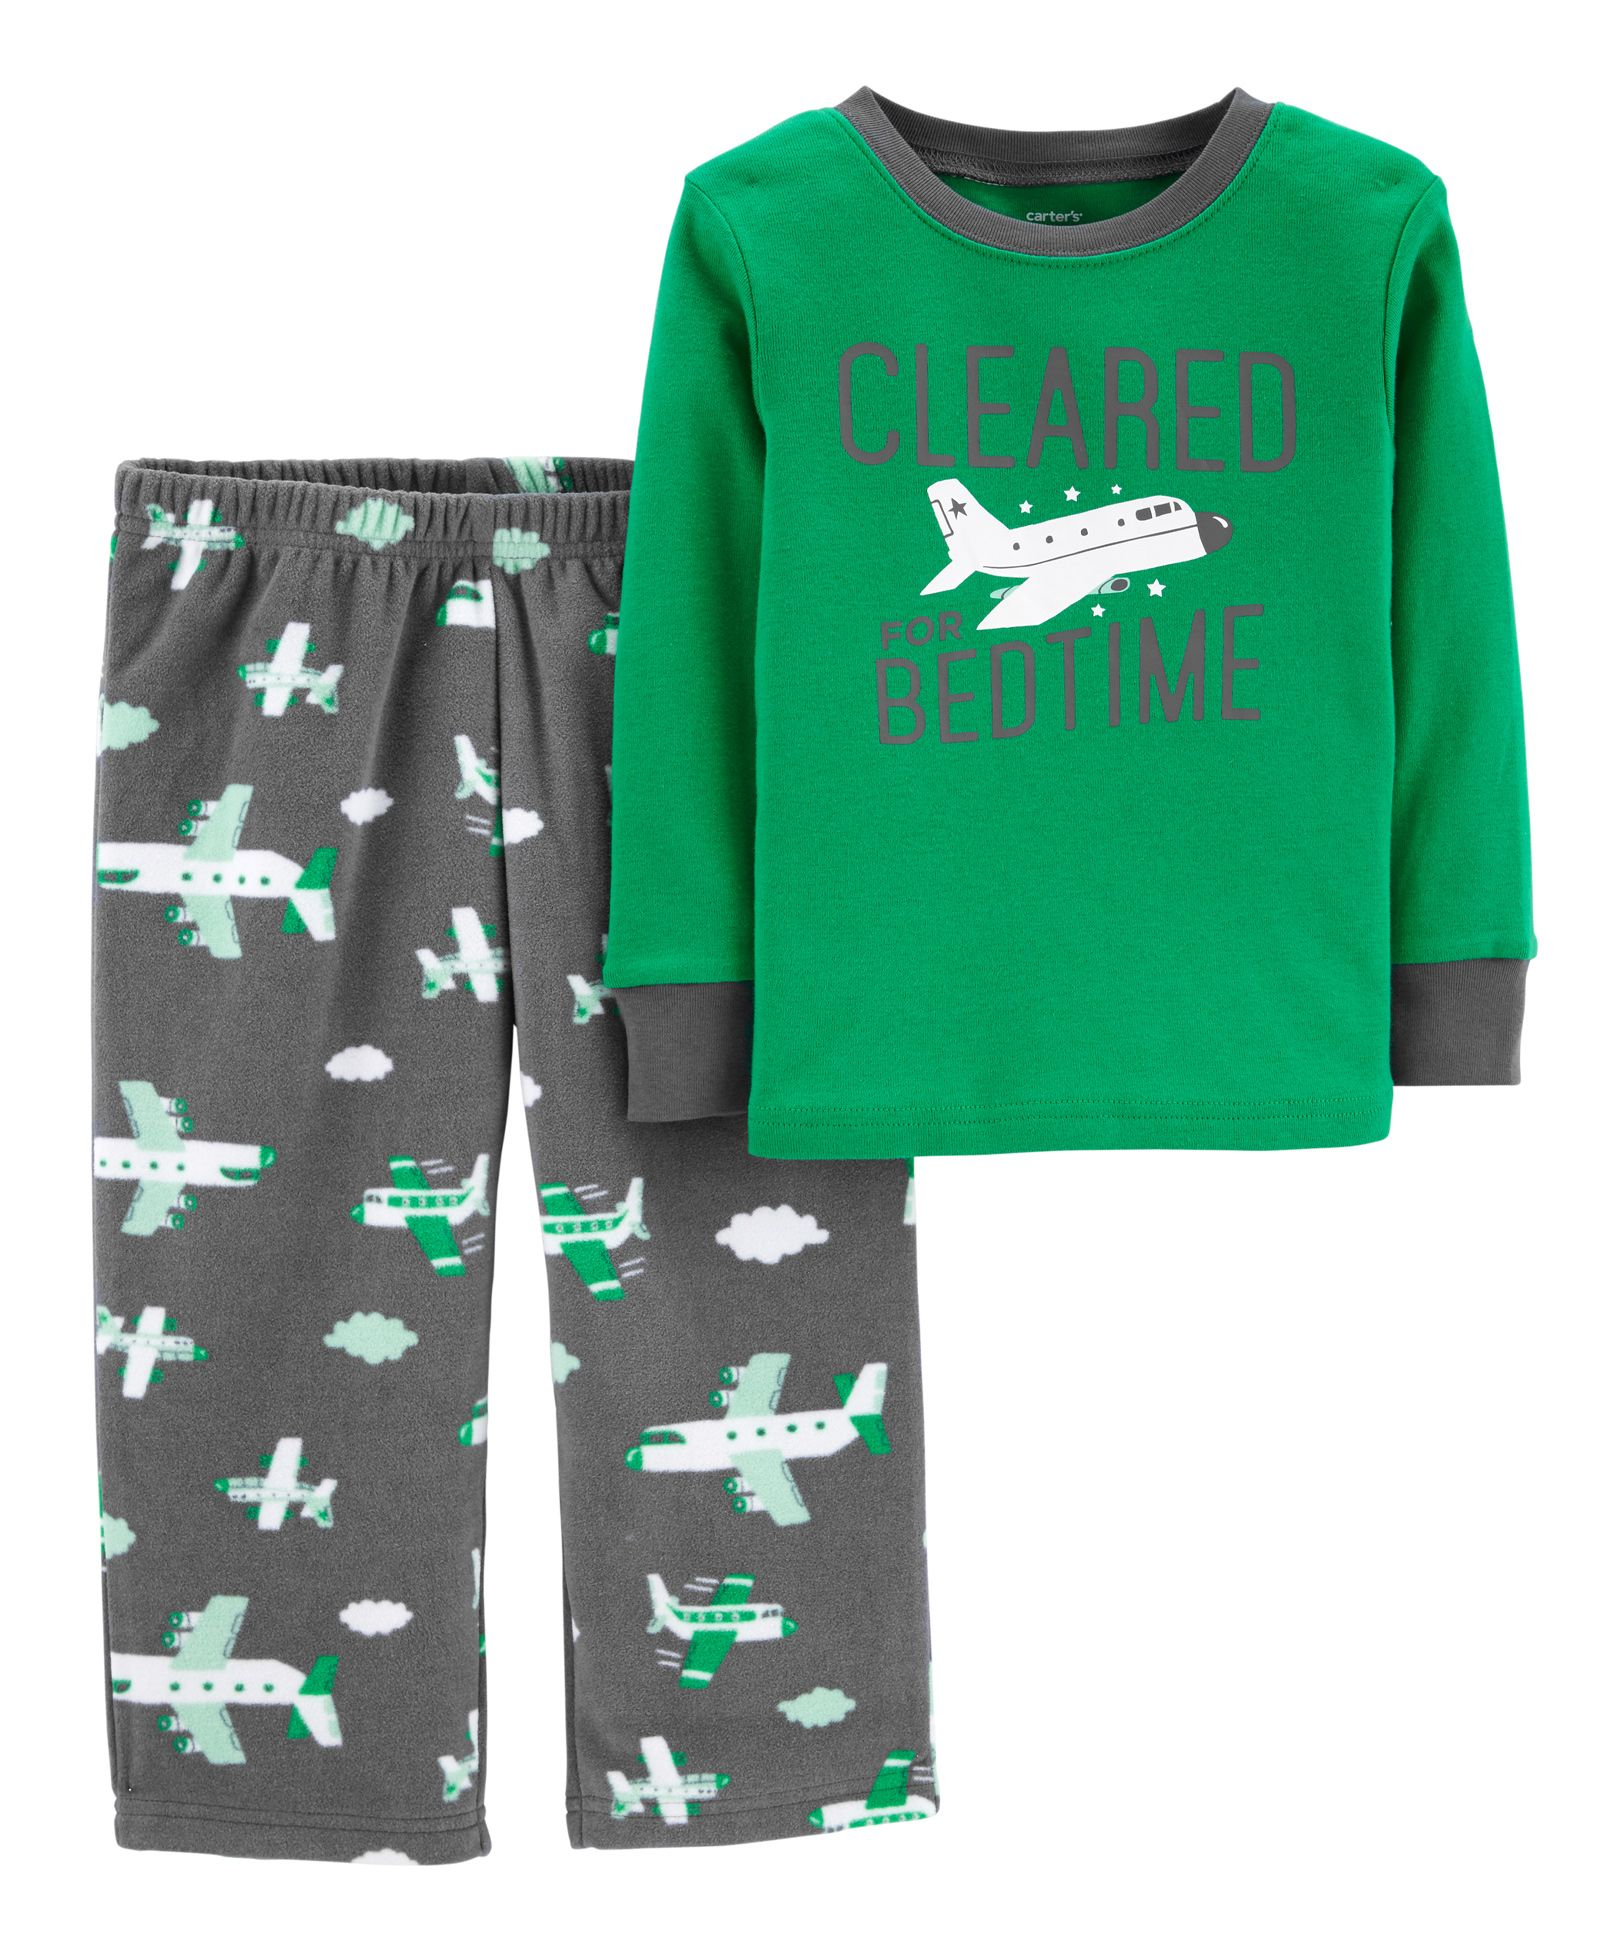 2b06e6f01 Carter s 2-Piece Airplane Cotton   Fleece PJs - Dark Green